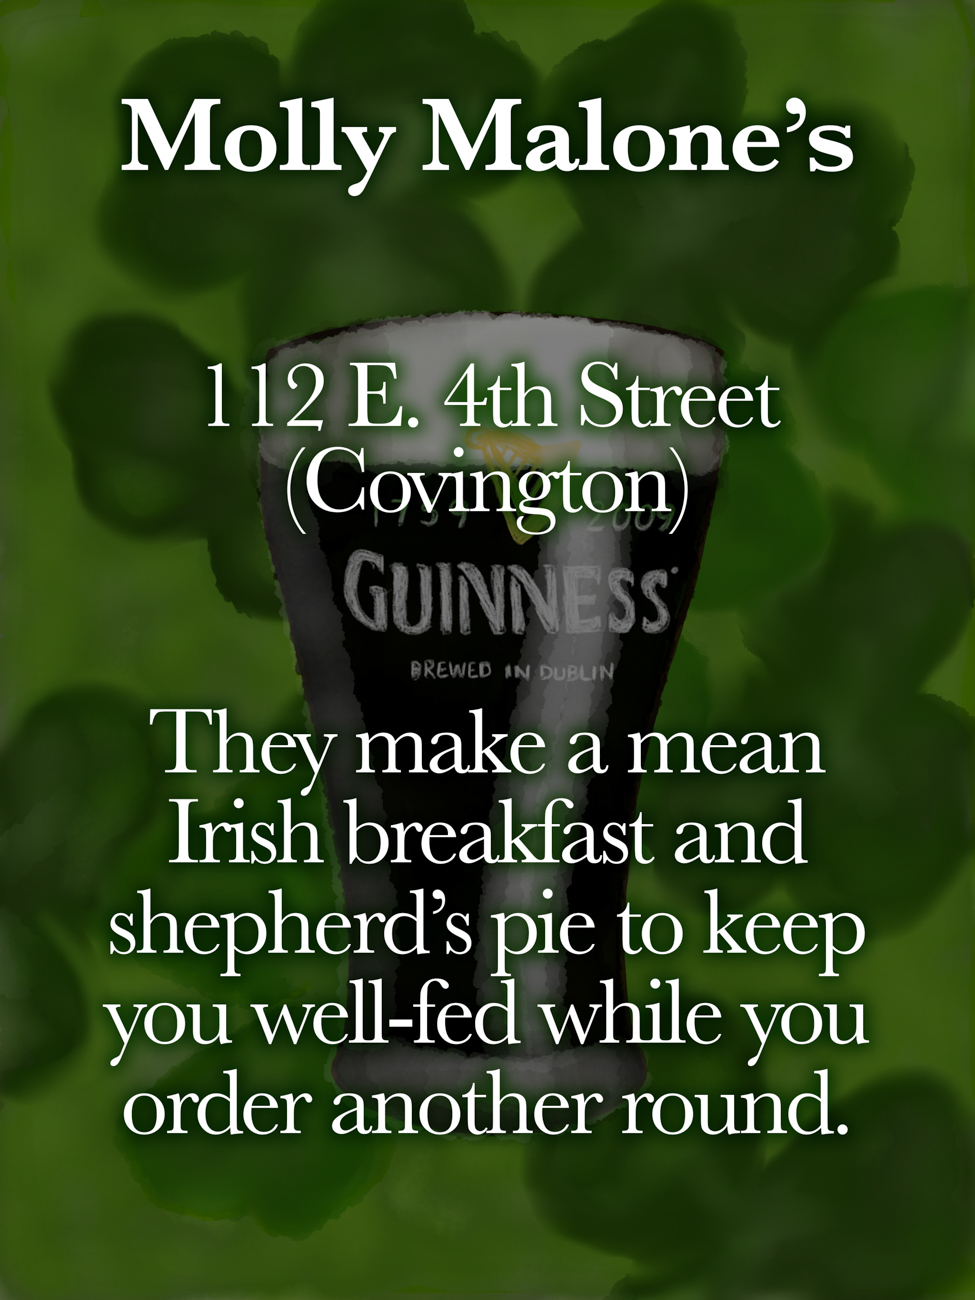 Molly Malone's / ADDRESS: 112 E. 4th Street (Covington){ }// Published: 3.16.19